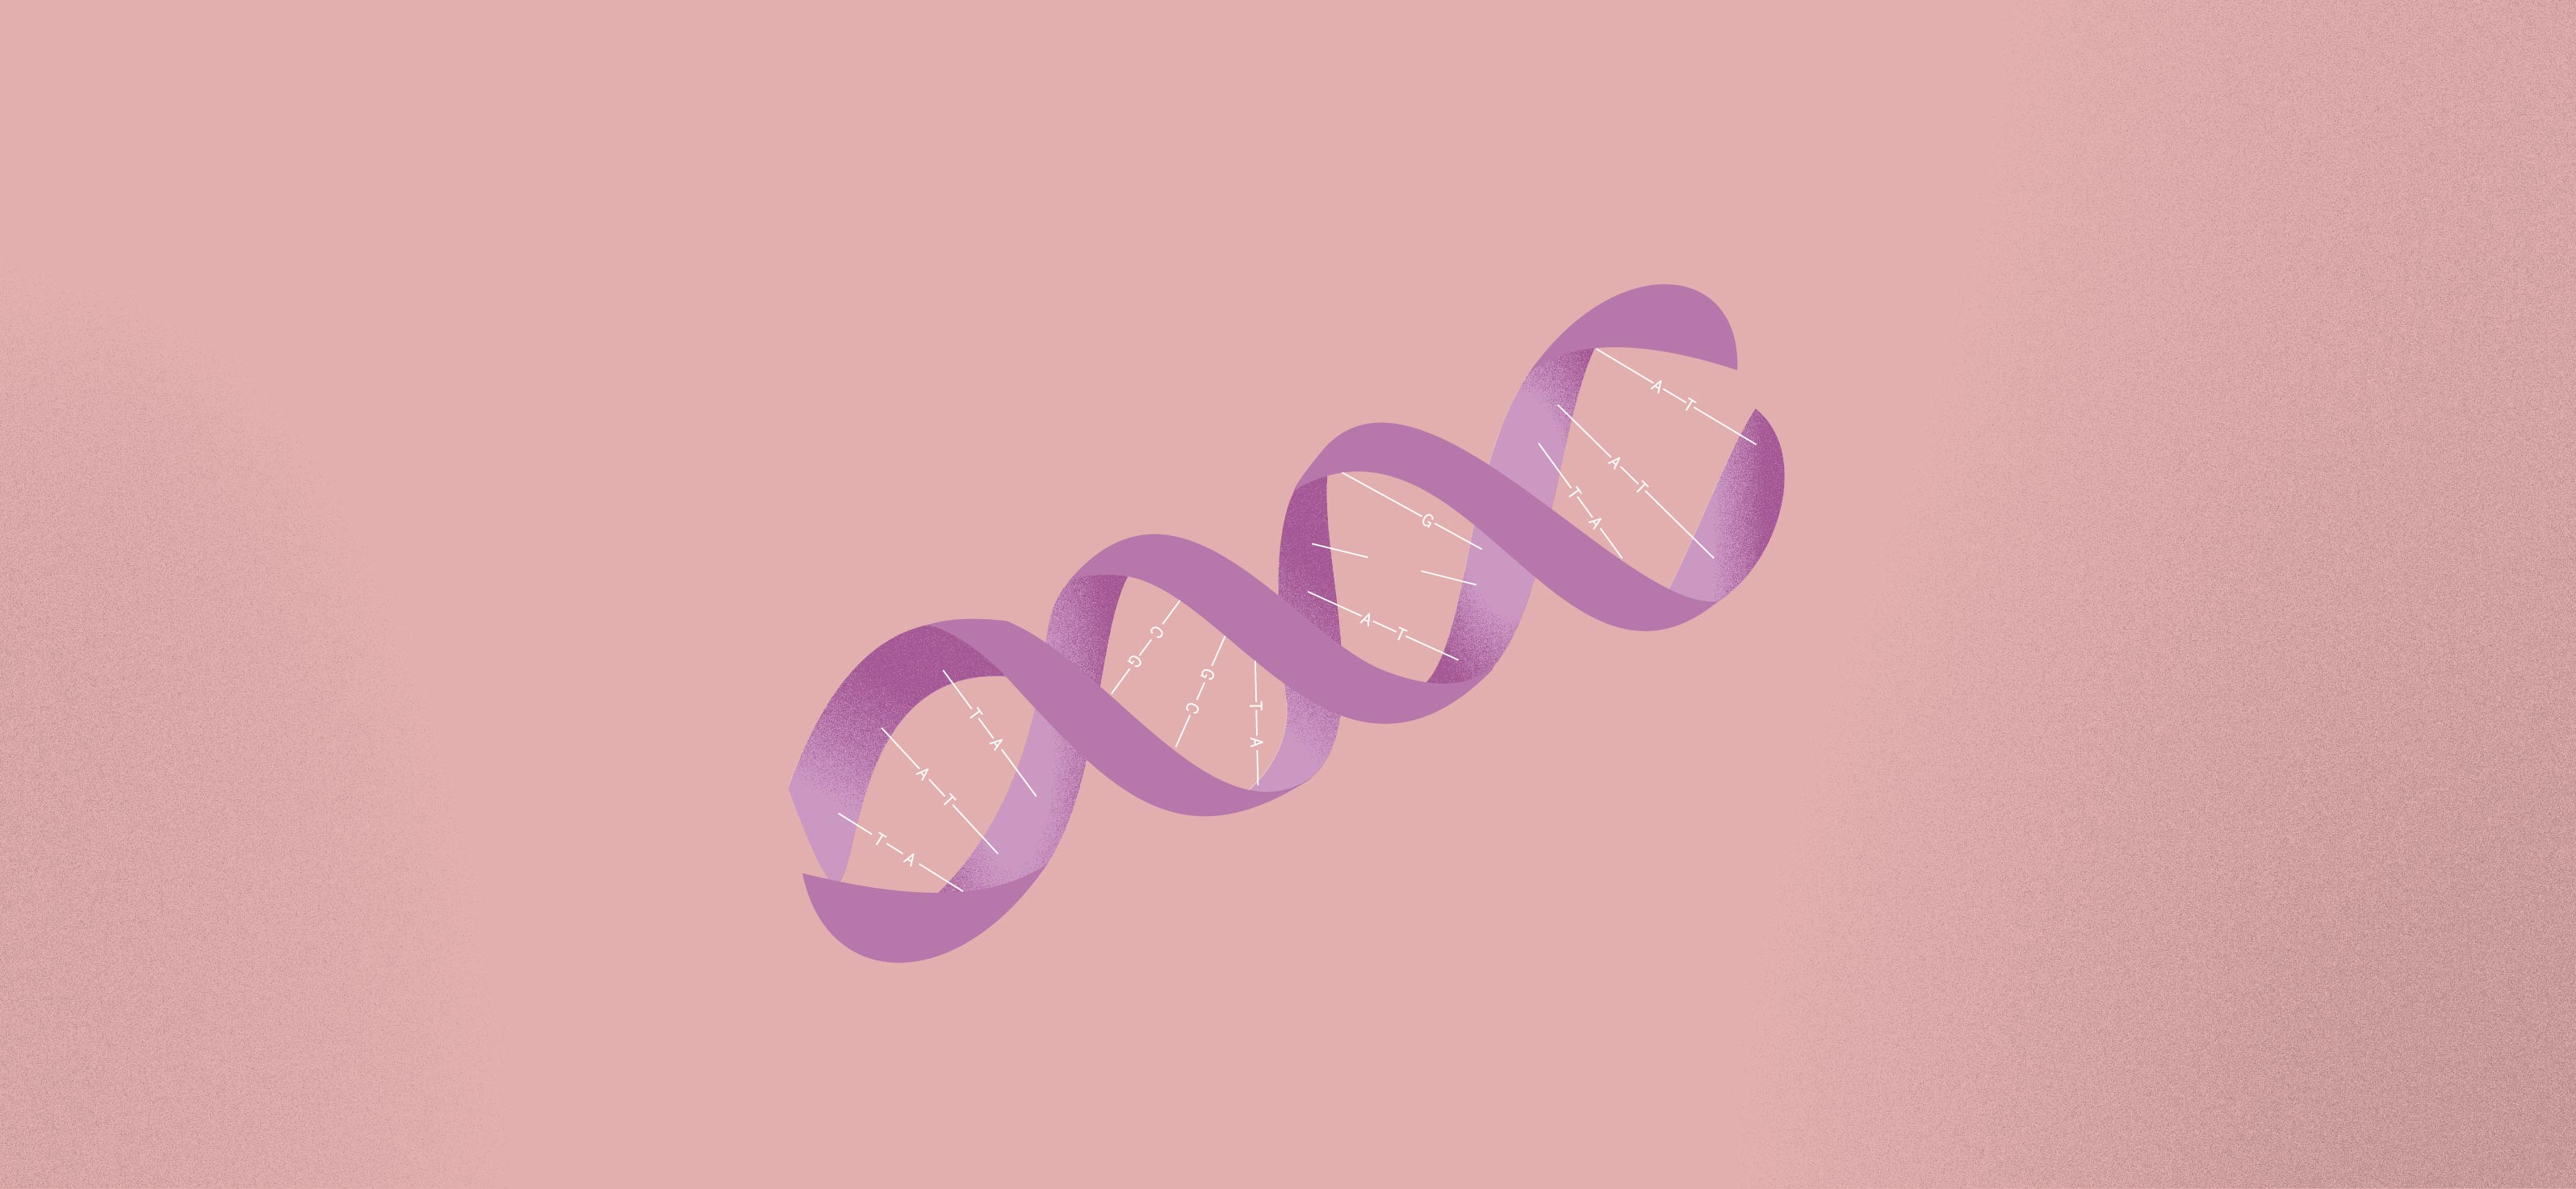 DNA helix illustration – tweezers are substituting DNA with XNA